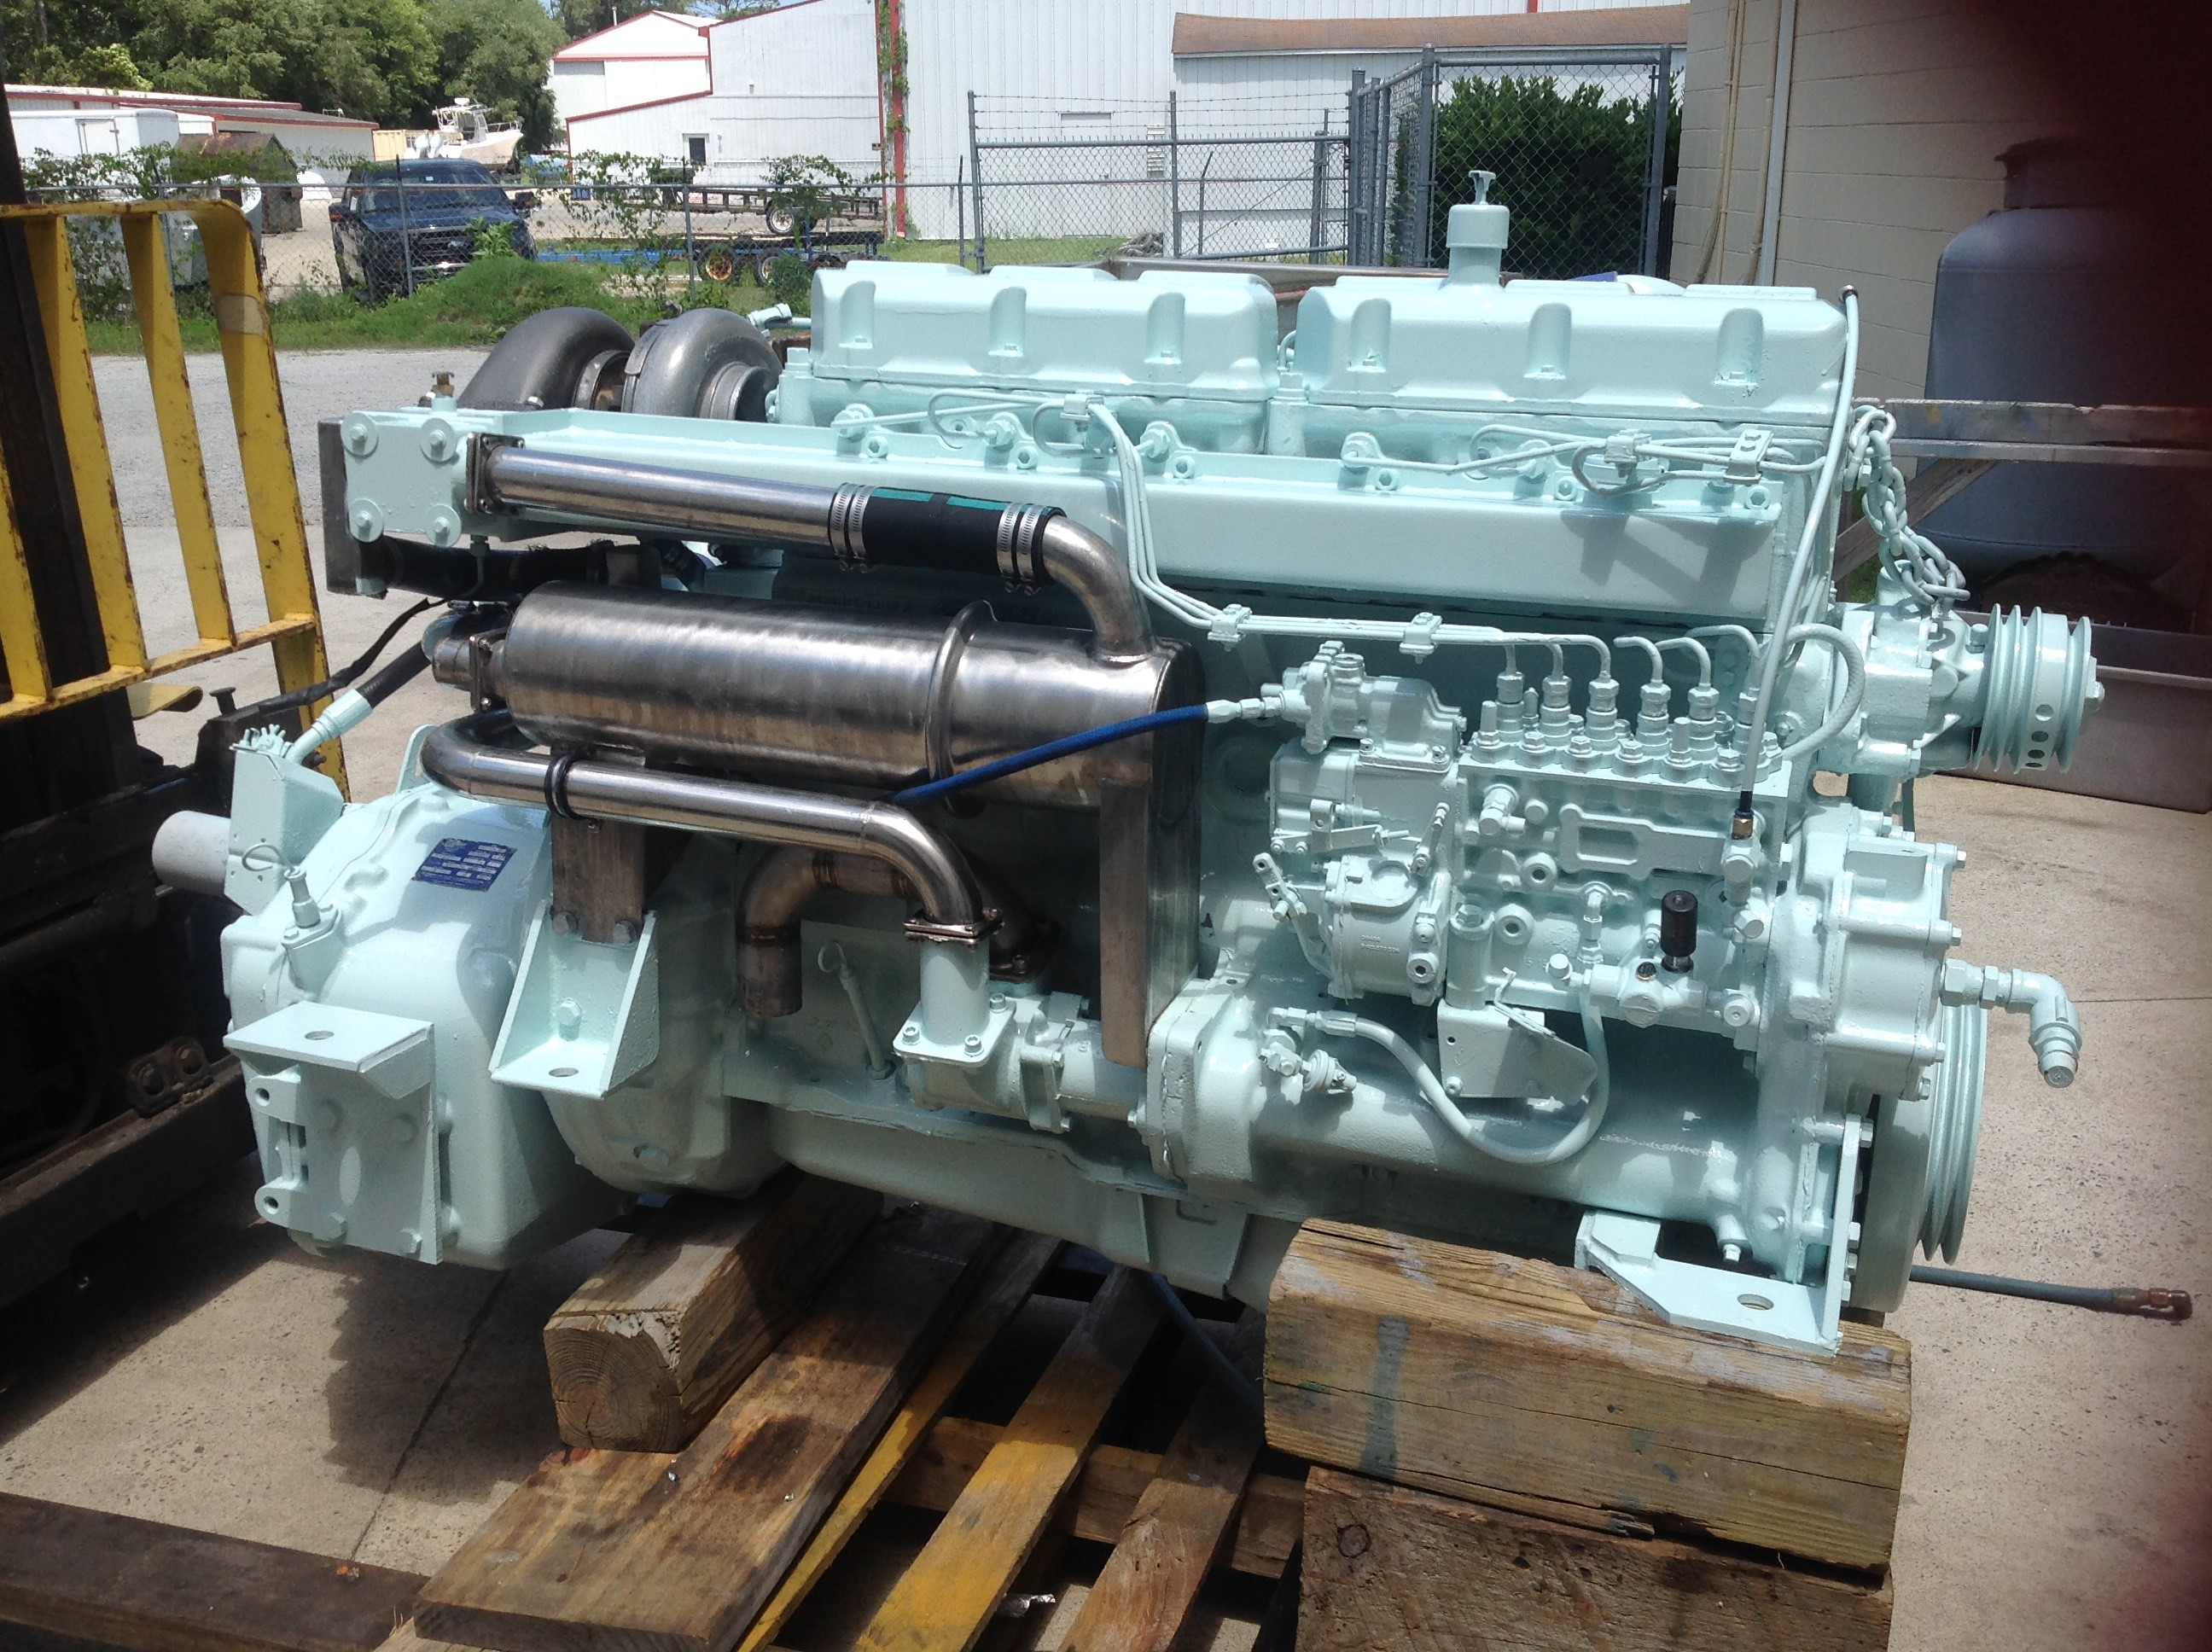 Common Differences Between Marine and Industrial Diesel Engines